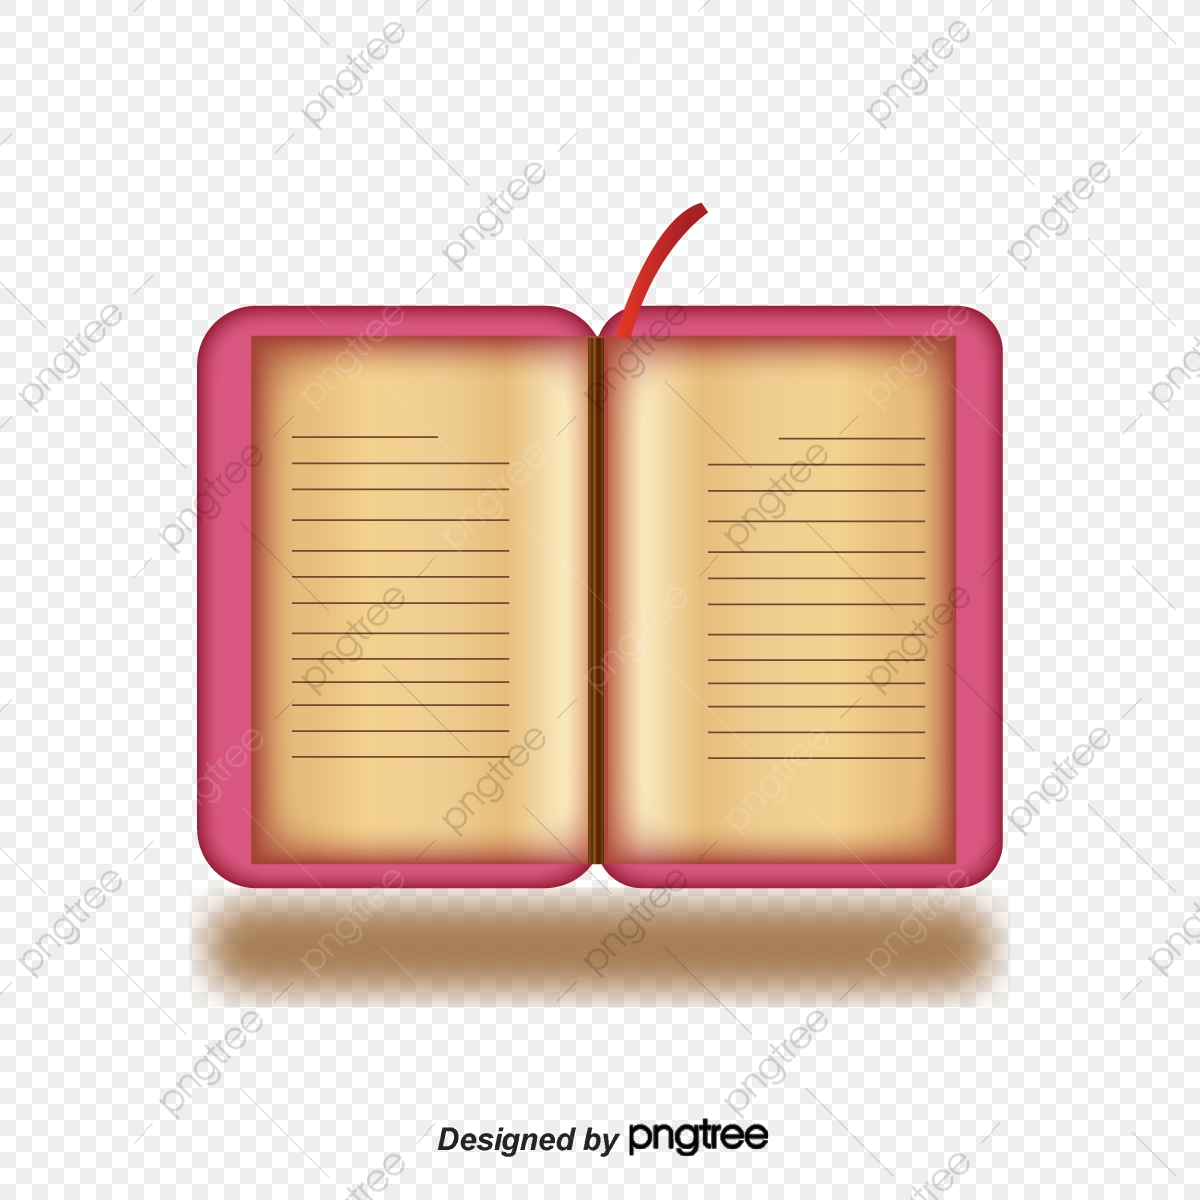 English Dictionary, Red Dictionary, Web Material, Reading PNG and